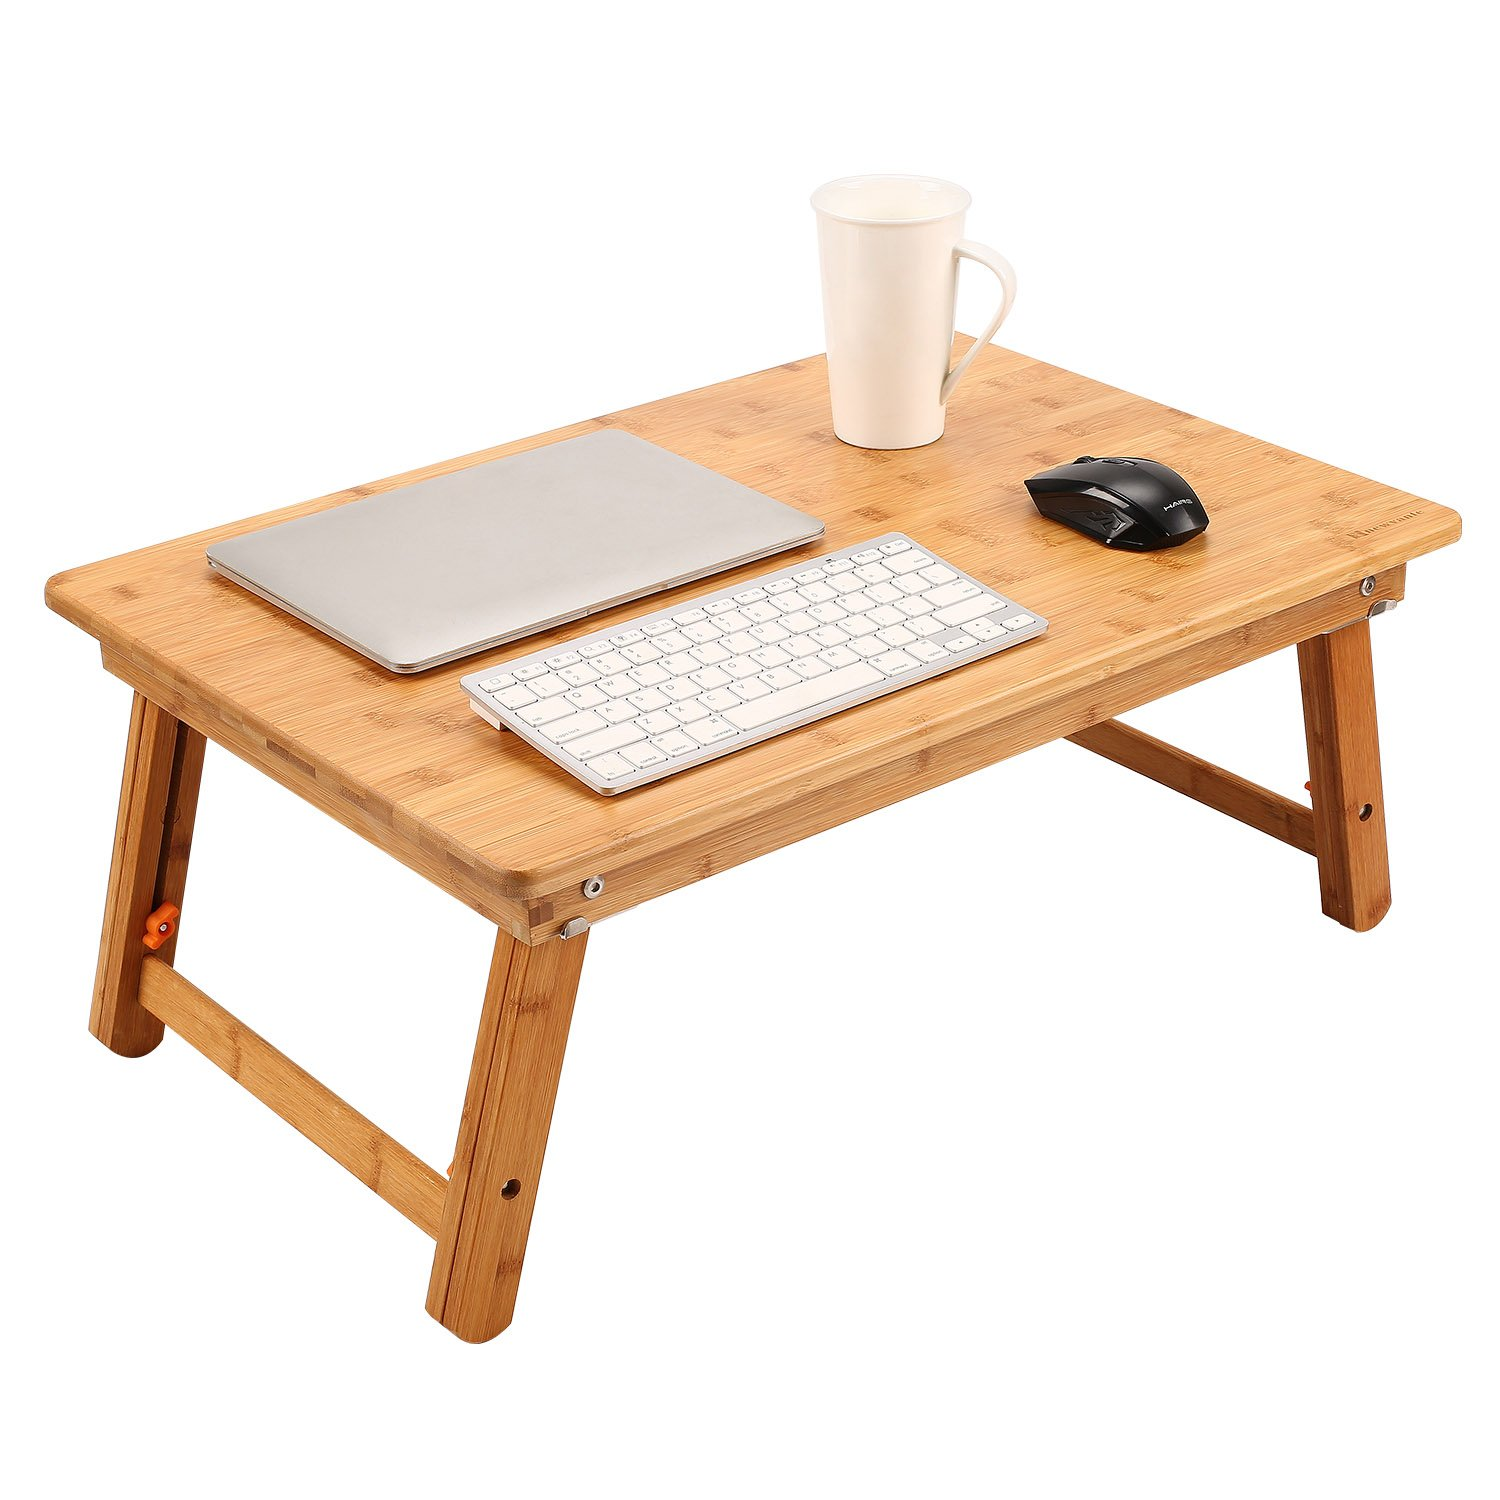 Large Size Laptop Tray Desk NNEWVANTE Foldable Lap Table Bed Tray, TV Tray Floor Table Bamboo Adjustable Breakfast Serving Tray Writing Gaming 4 Leg Latches Support up to 18in Laptop, 25.6x17.7in by NNEWVANTE